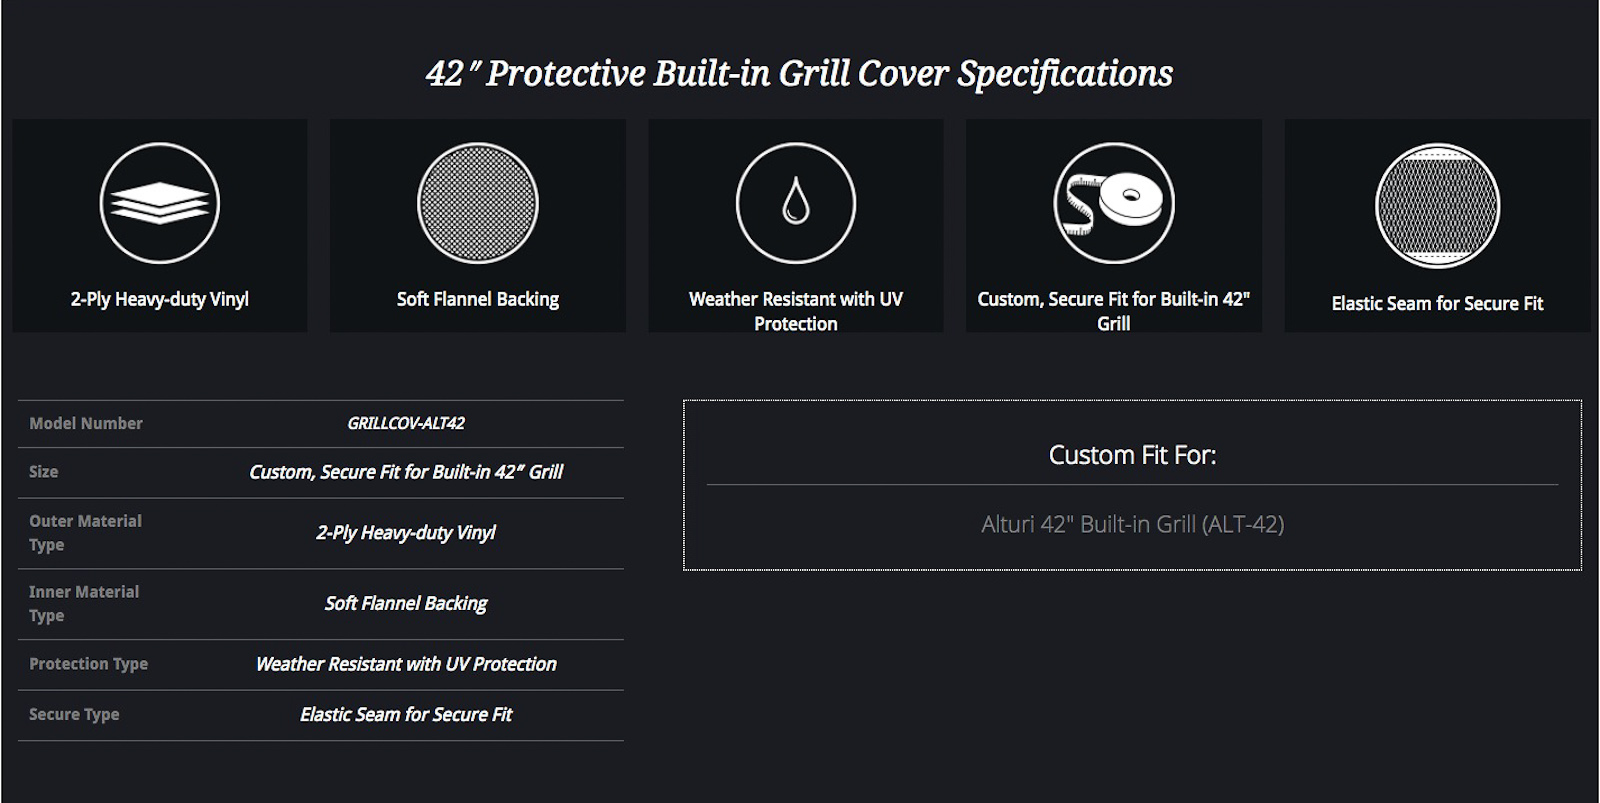 summerset-alturi-42-22-built-in-deluxe-grill-cover-grillcov-alt42d.jpg